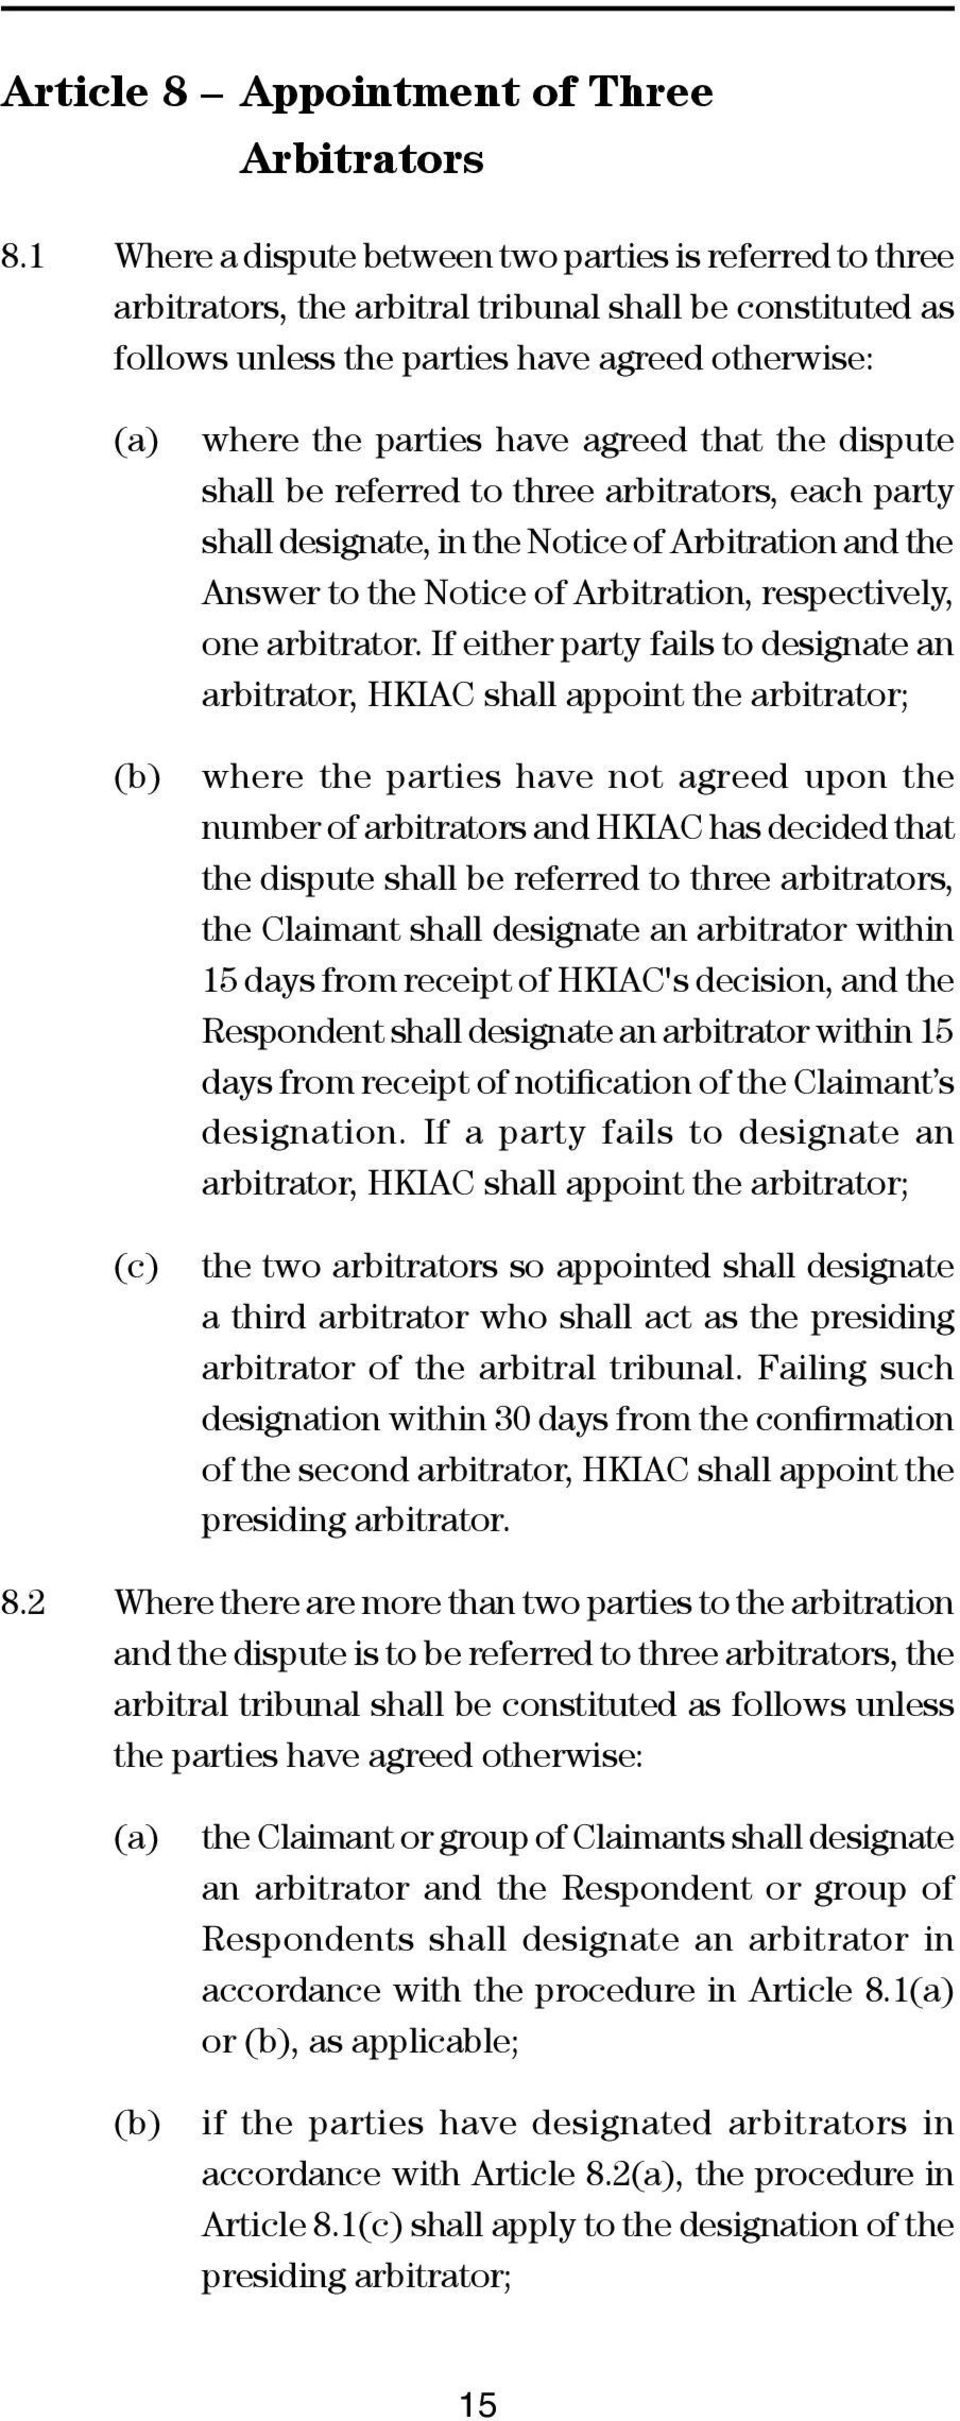 have agreed that the dispute shall be referred to three arbitrators, each party shall designate, in the Notice of Arbitration and the Answer to the Notice of Arbitration, respectively, one arbitrator.